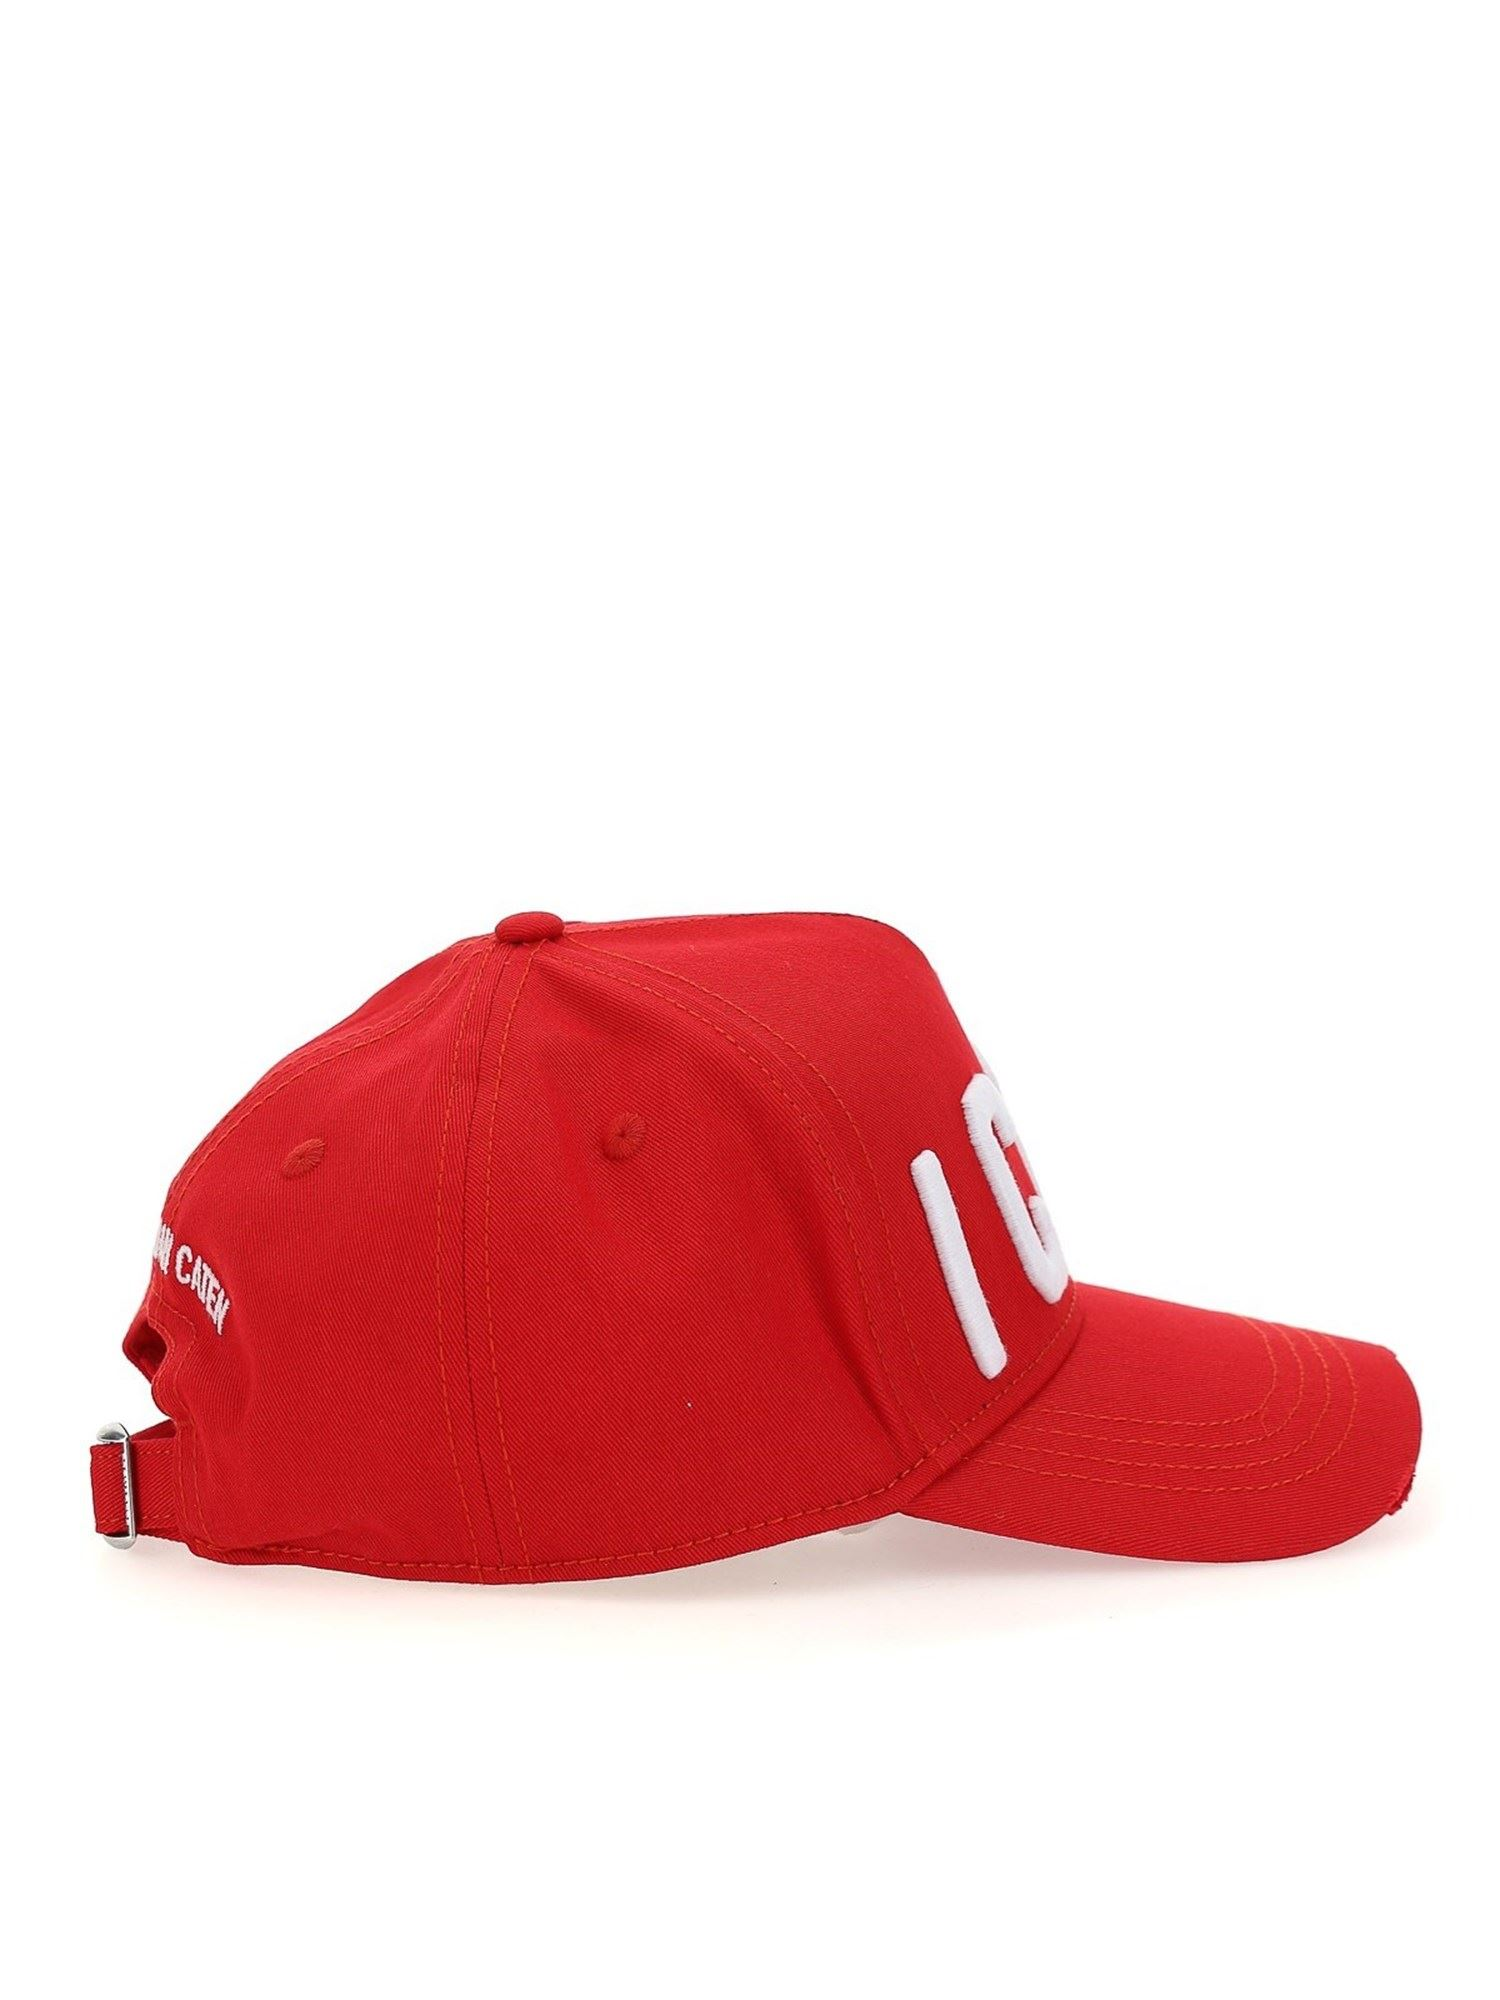 Dsquared2 ICON BASEBALL HAT IN RED